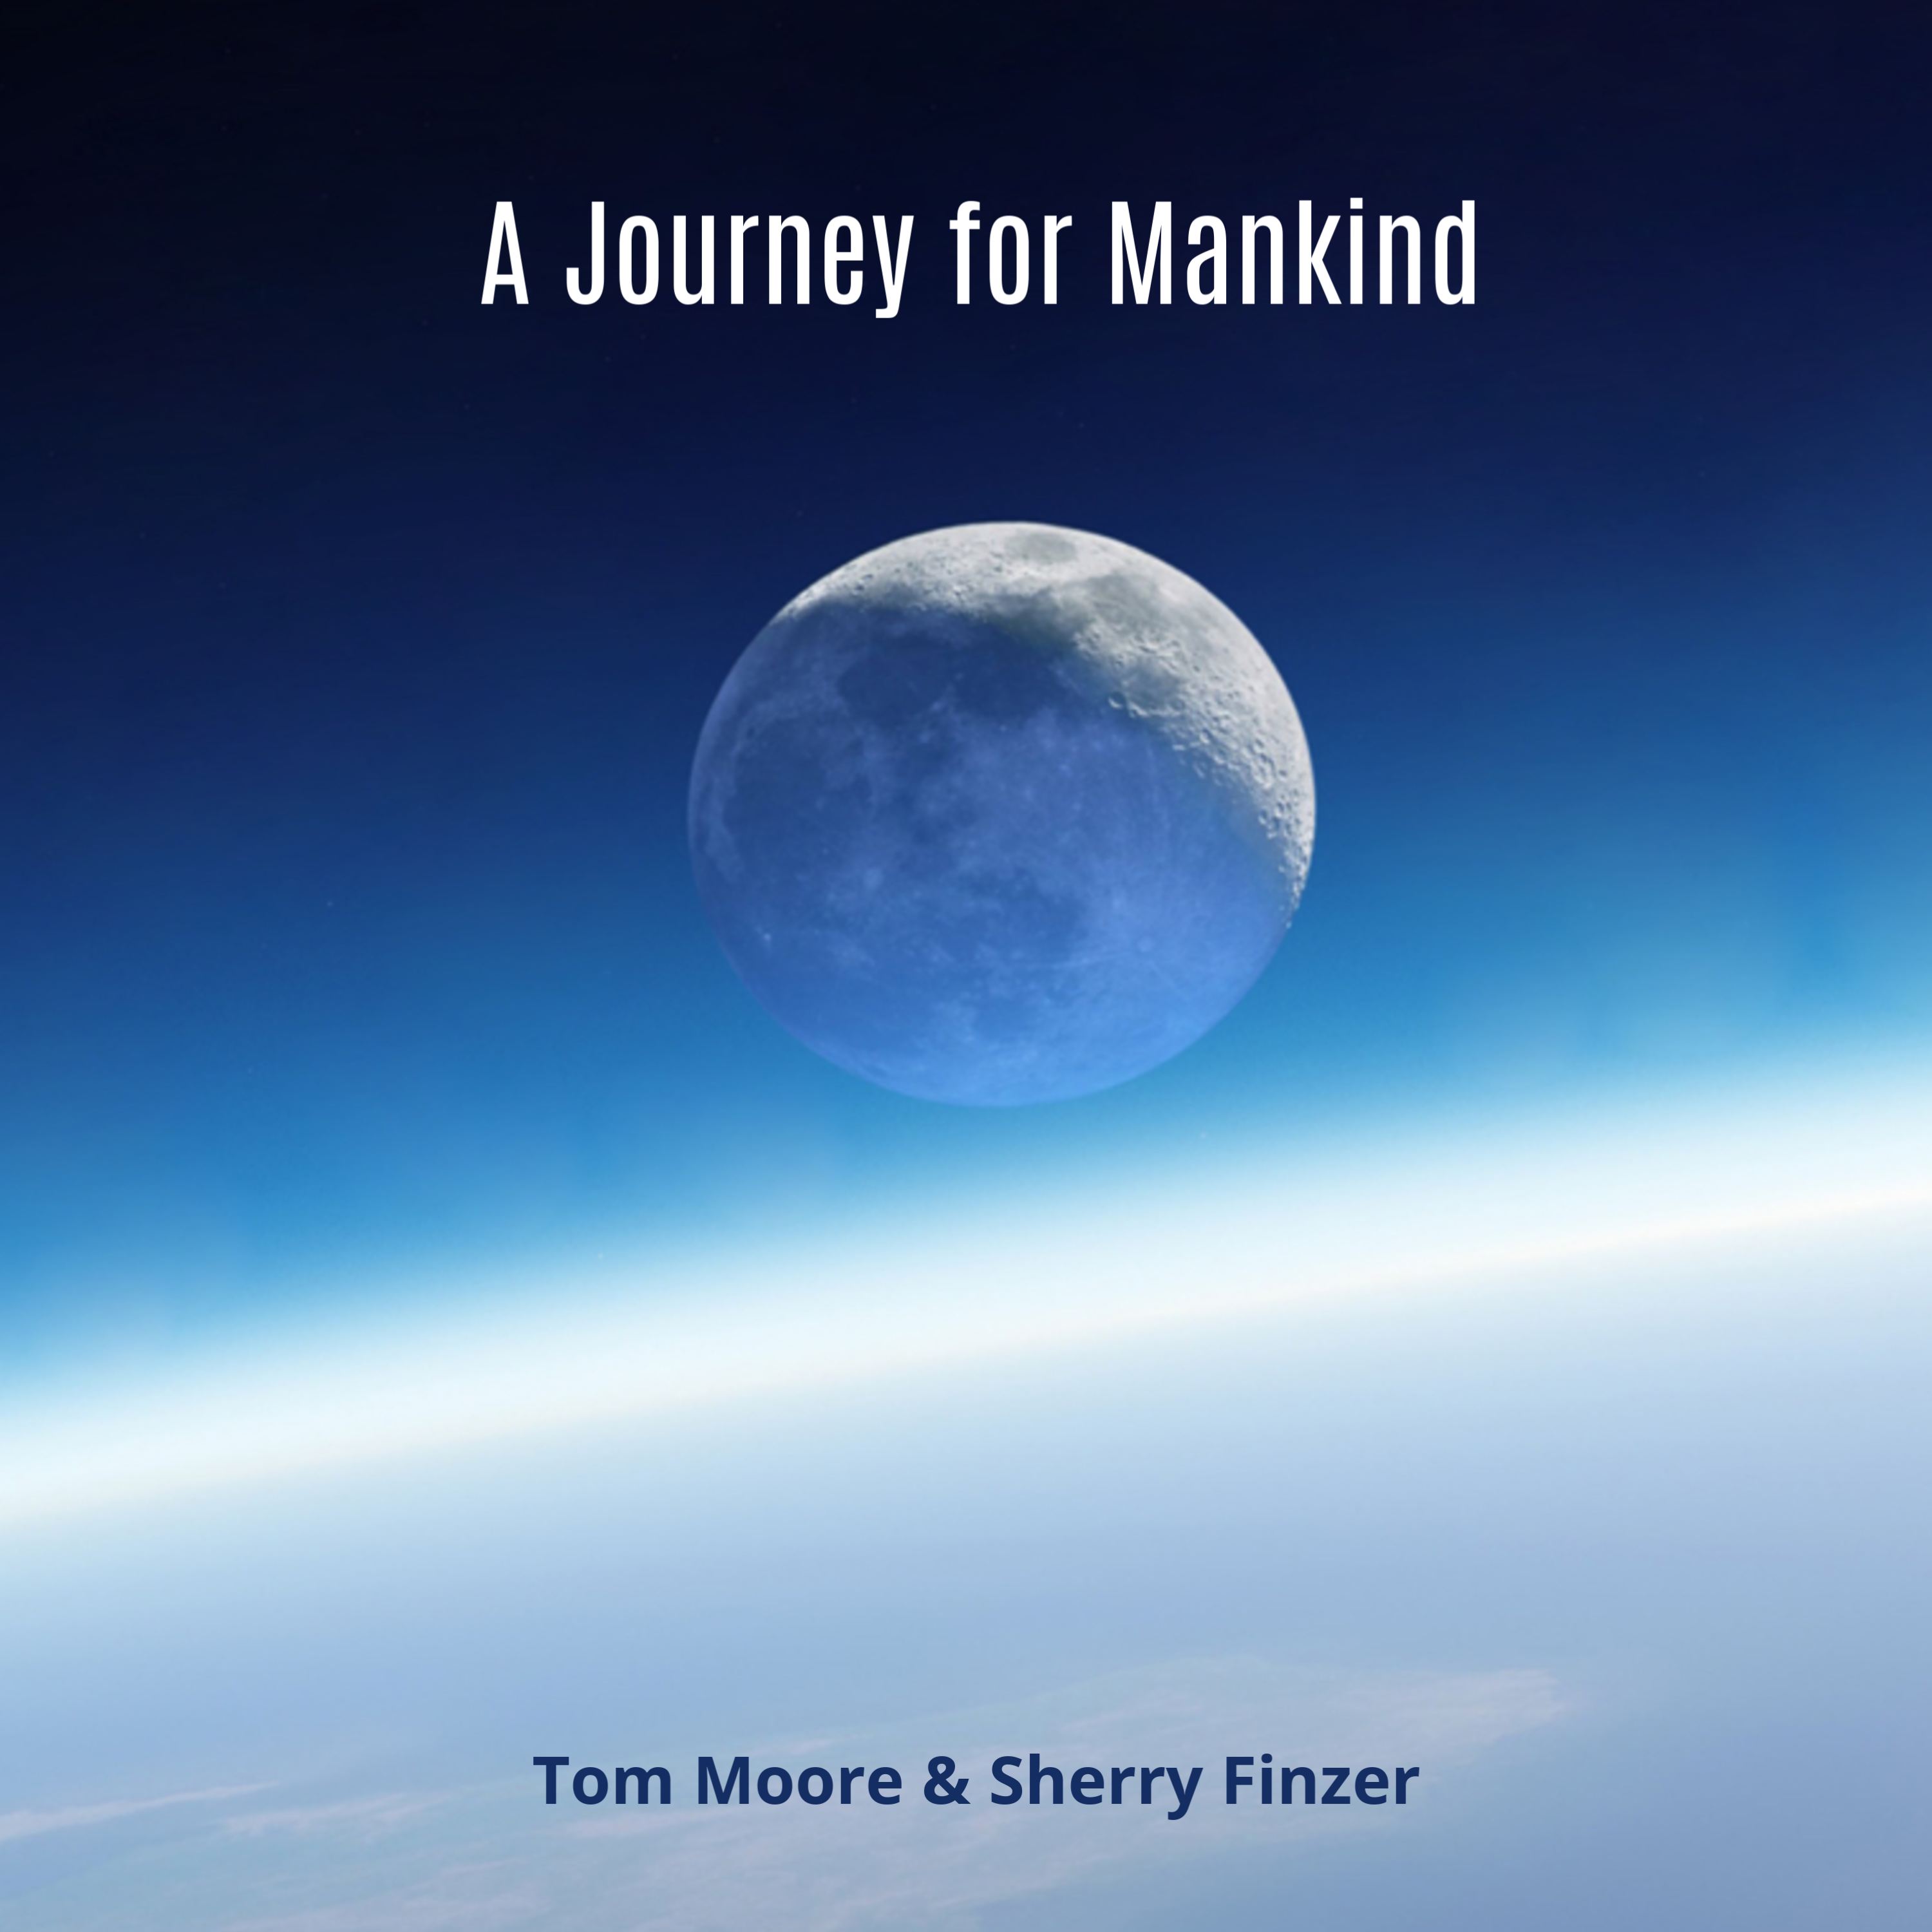 A Journey for Mankind - Tom Moore & Sher